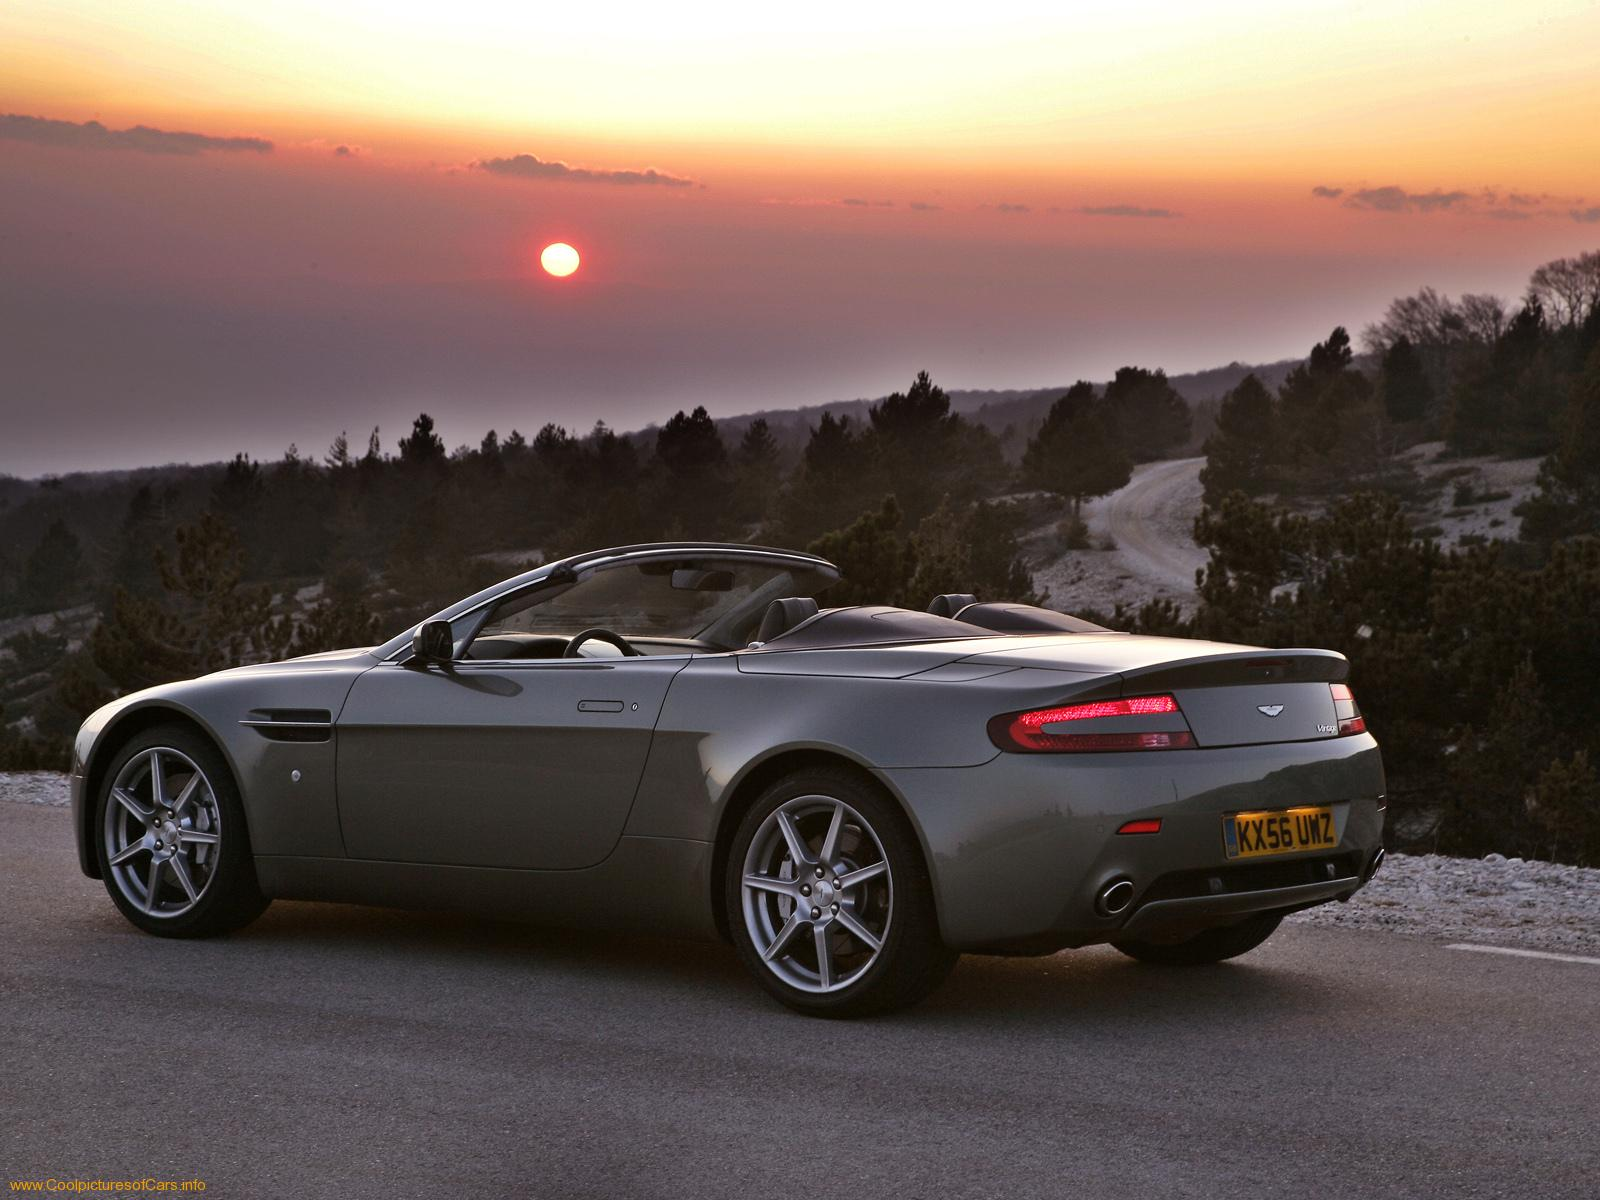 Aston Martin V8 Vantage Convertible Wallpaper 1600x1200 2014